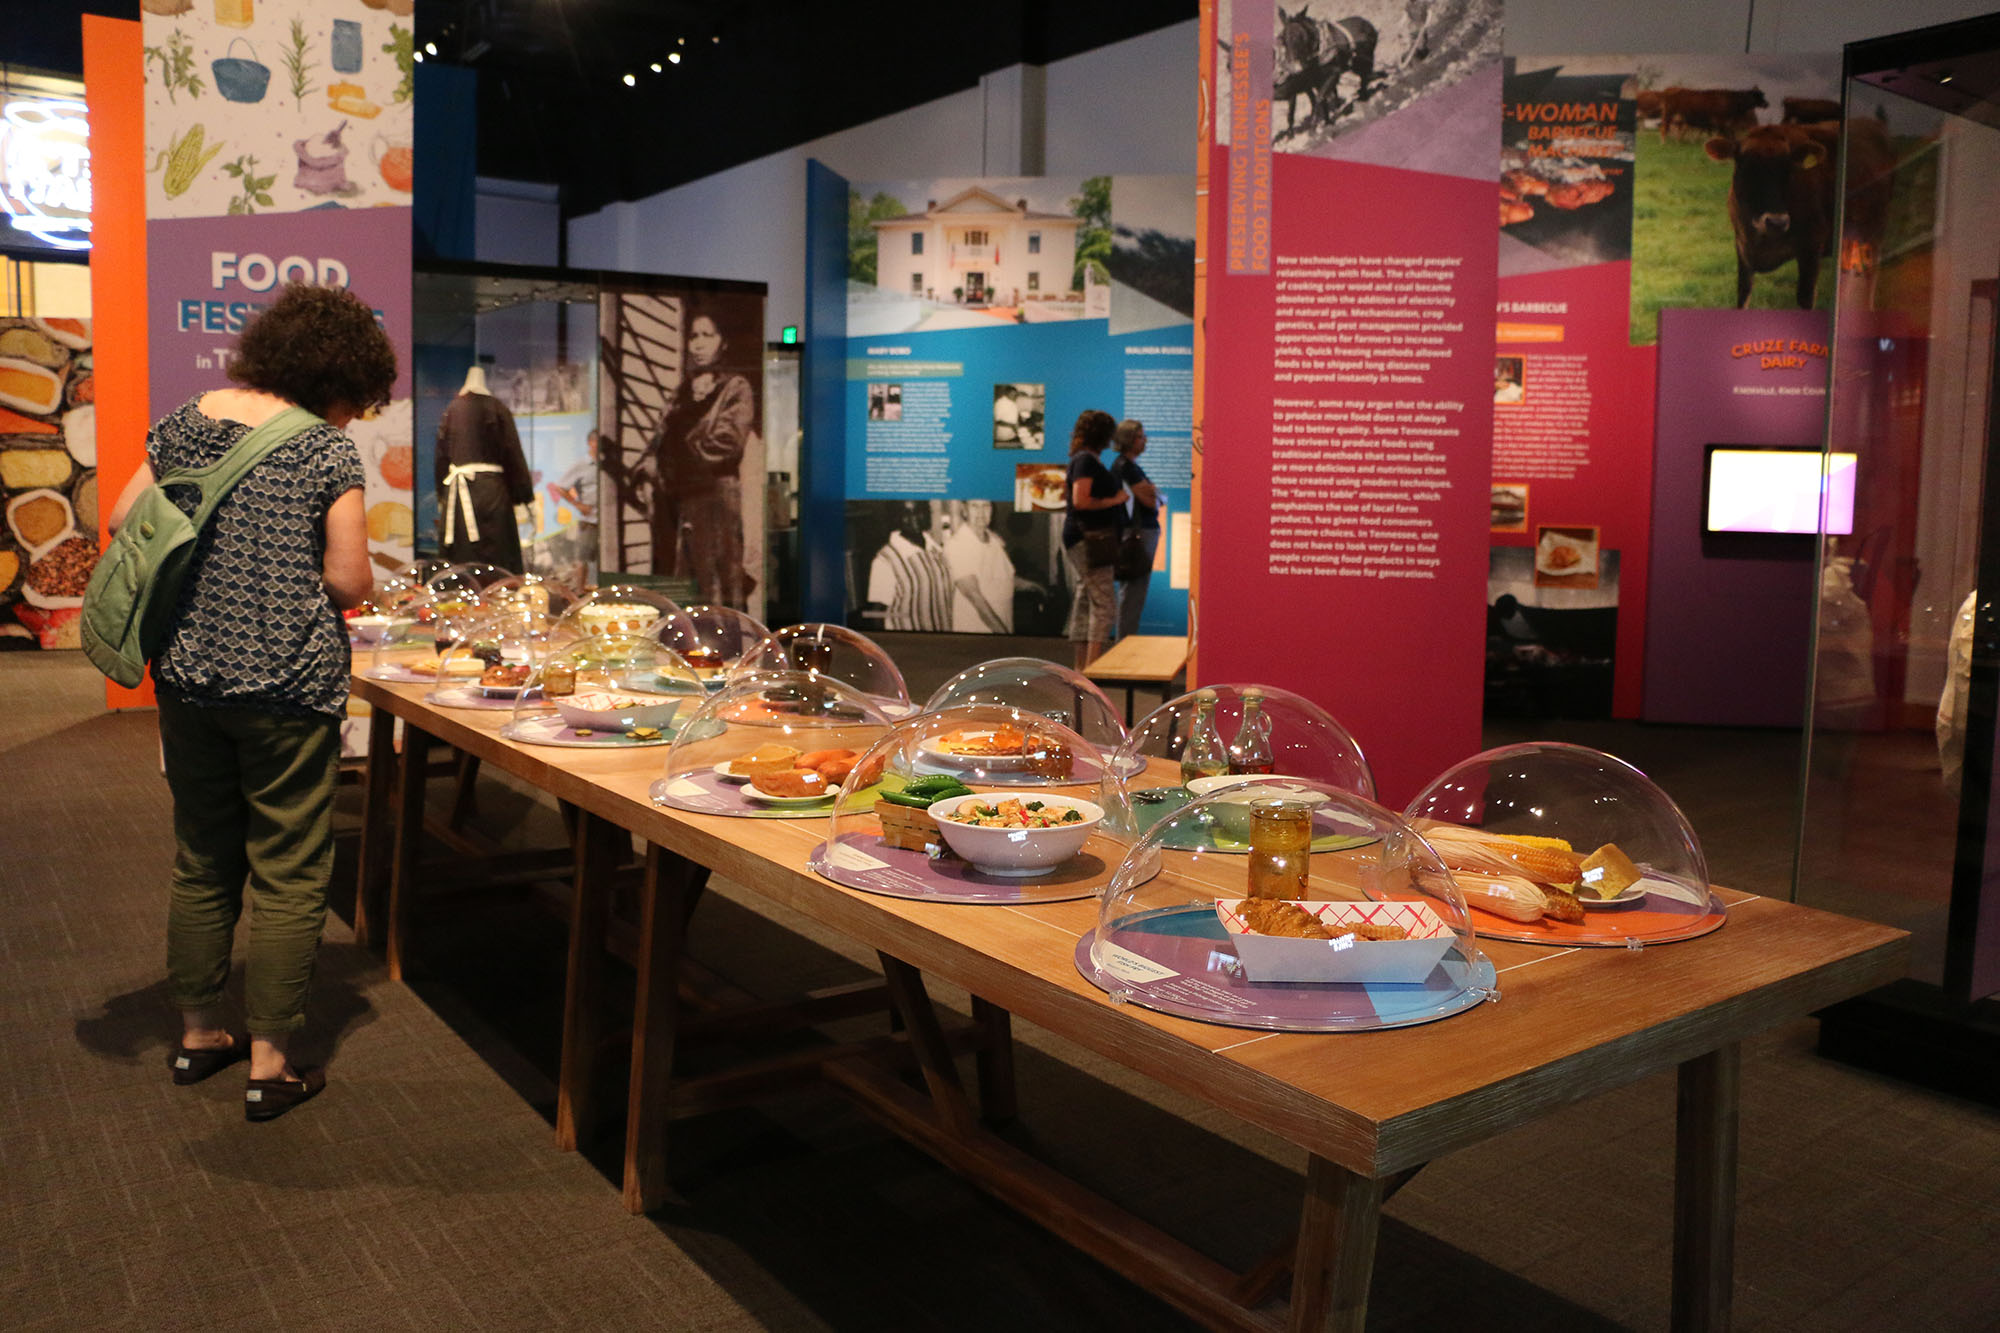 Food Festivals in Tennessee in Let's Eat! Exhibition